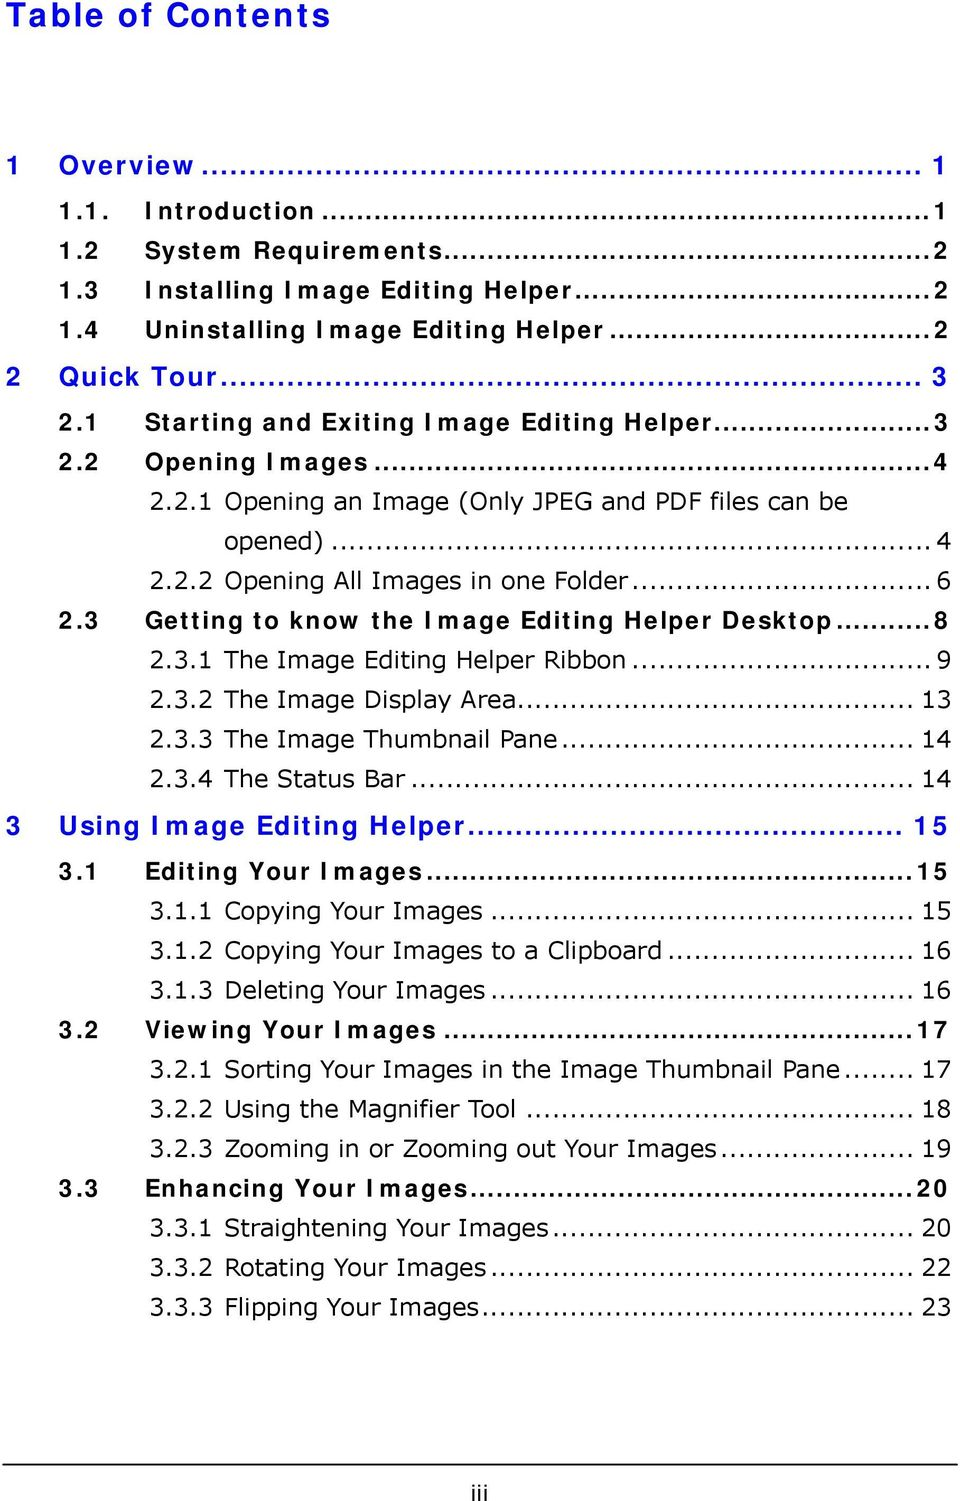 3 Getting to know the Image Editing Helper Desktop...8 2.3.1 The Image Editing Helper Ribbon... 9 2.3.2 The Image Display Area... 13 2.3.3 The Image Thumbnail Pane... 14 2.3.4 The Status Bar.